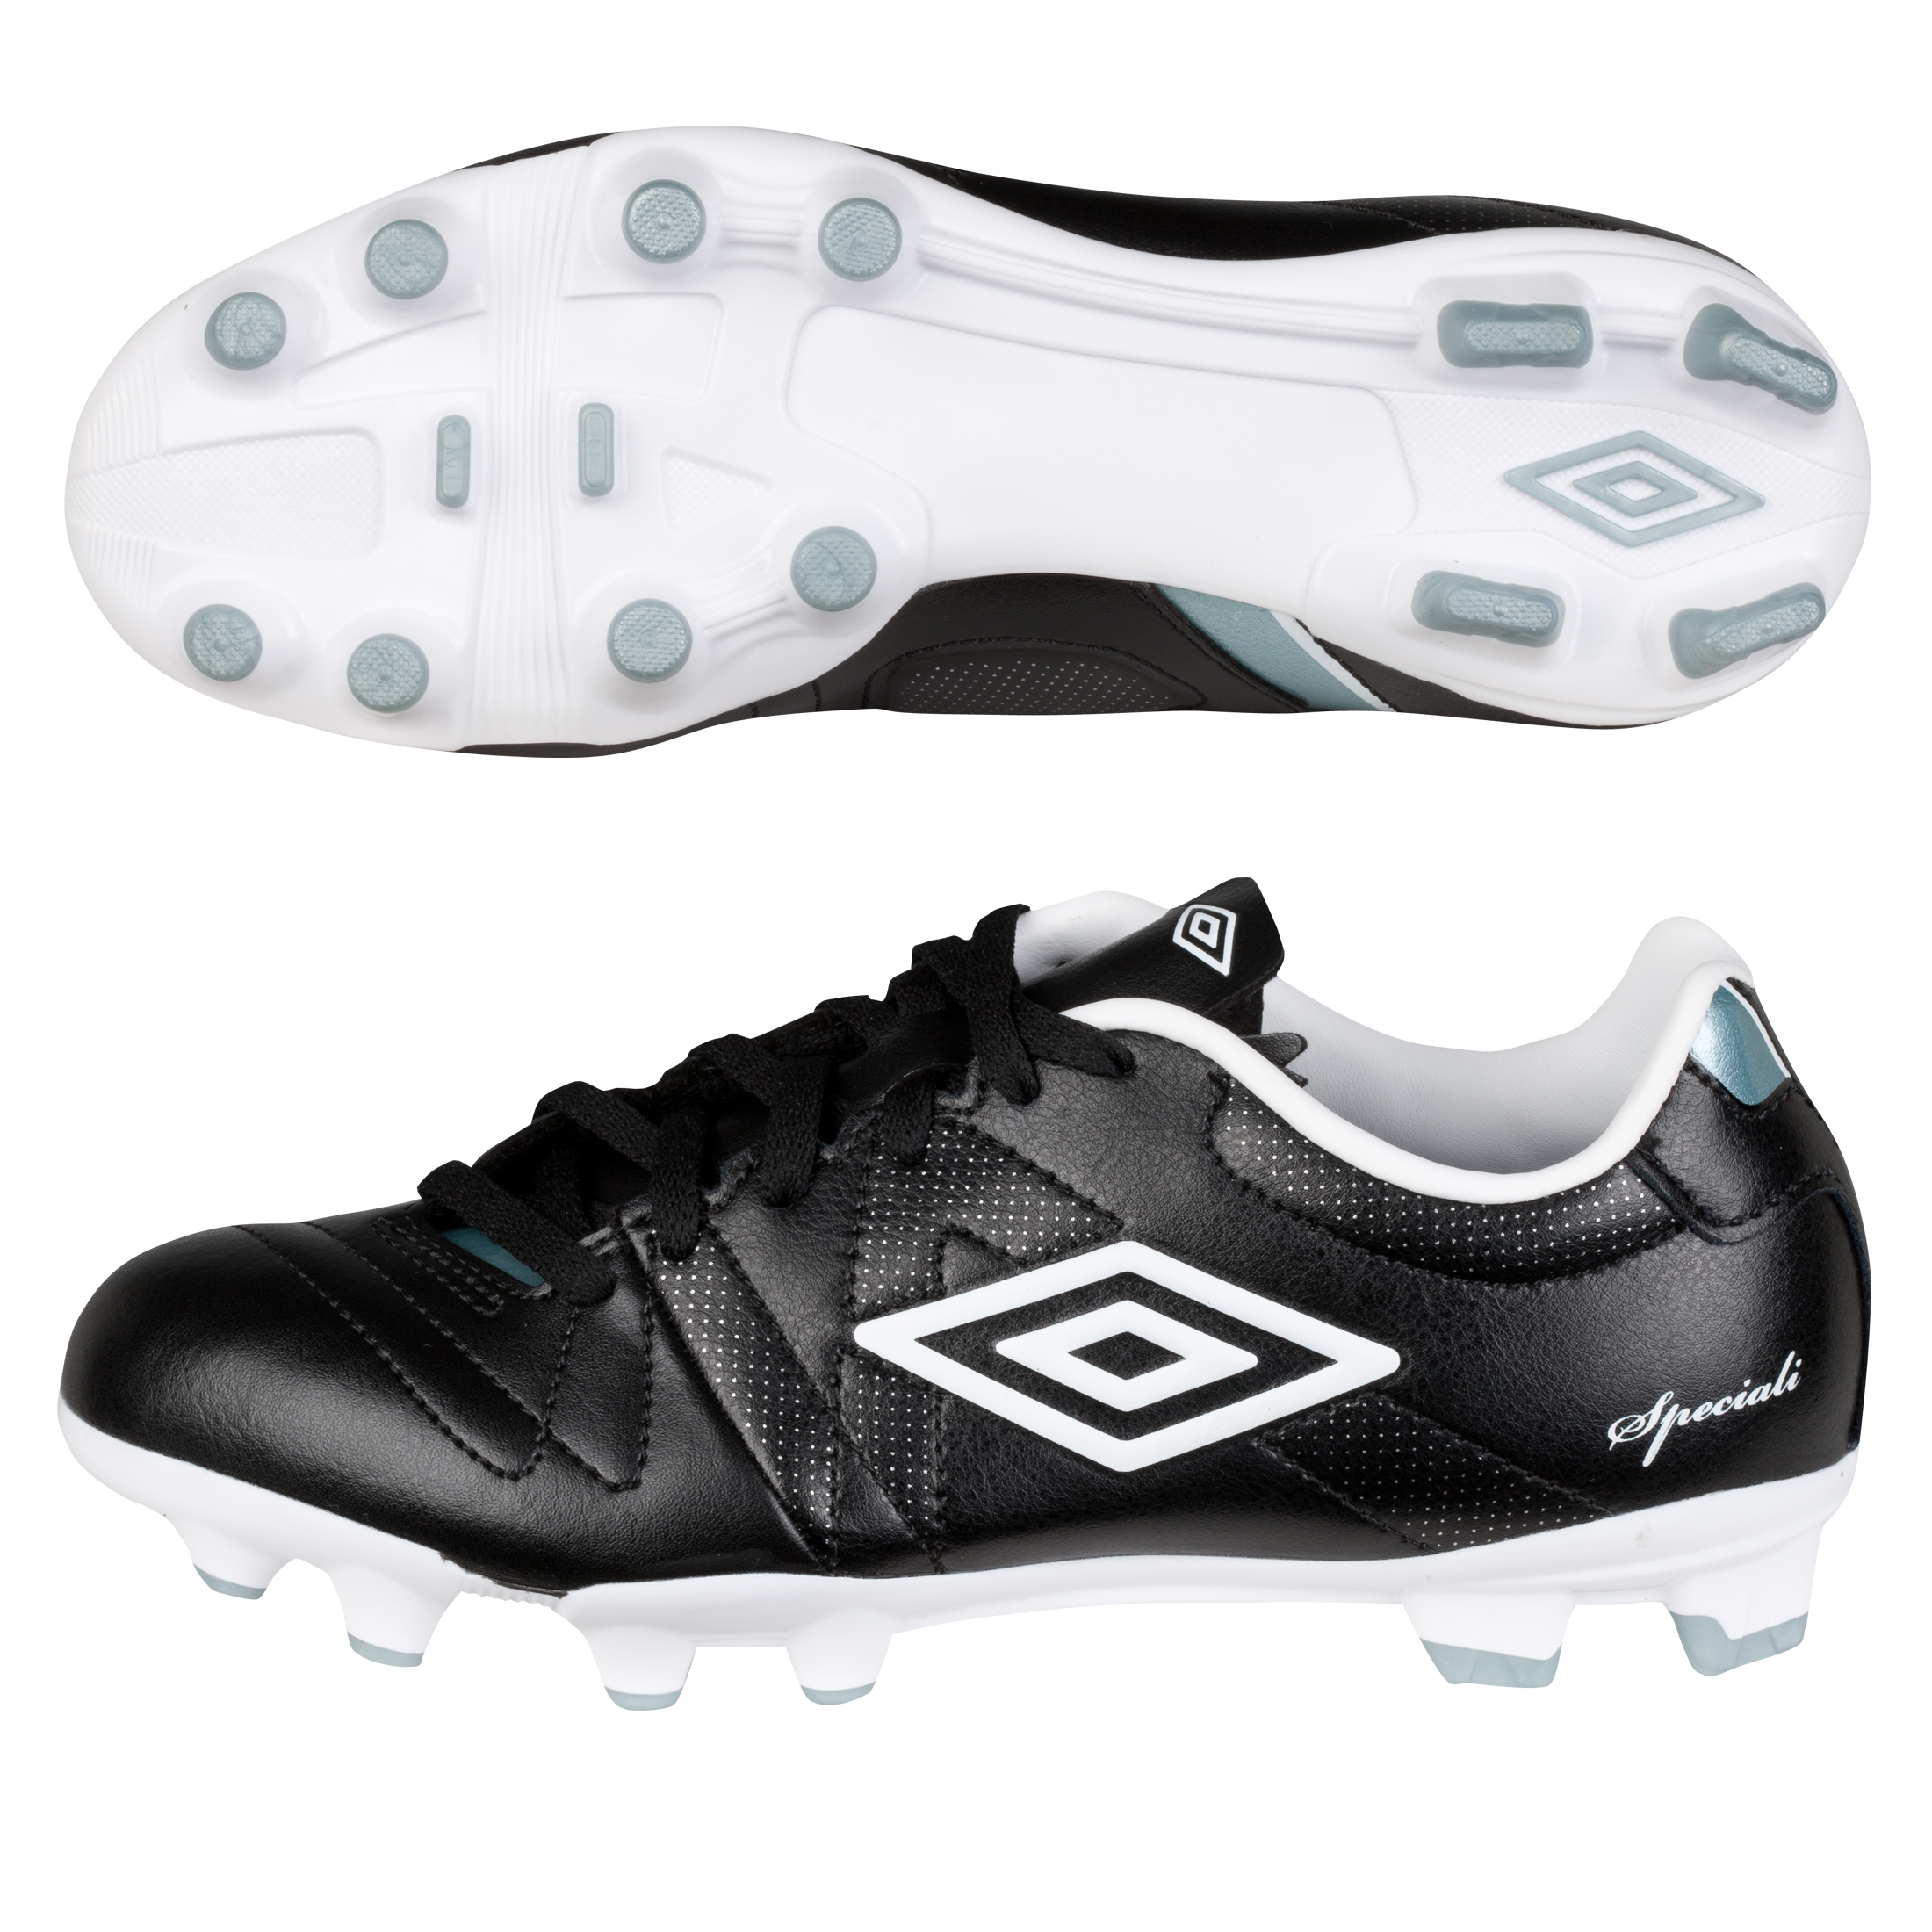 Umbro Speciali 3 Hard Ground Football Boots - Black/White/Chrome